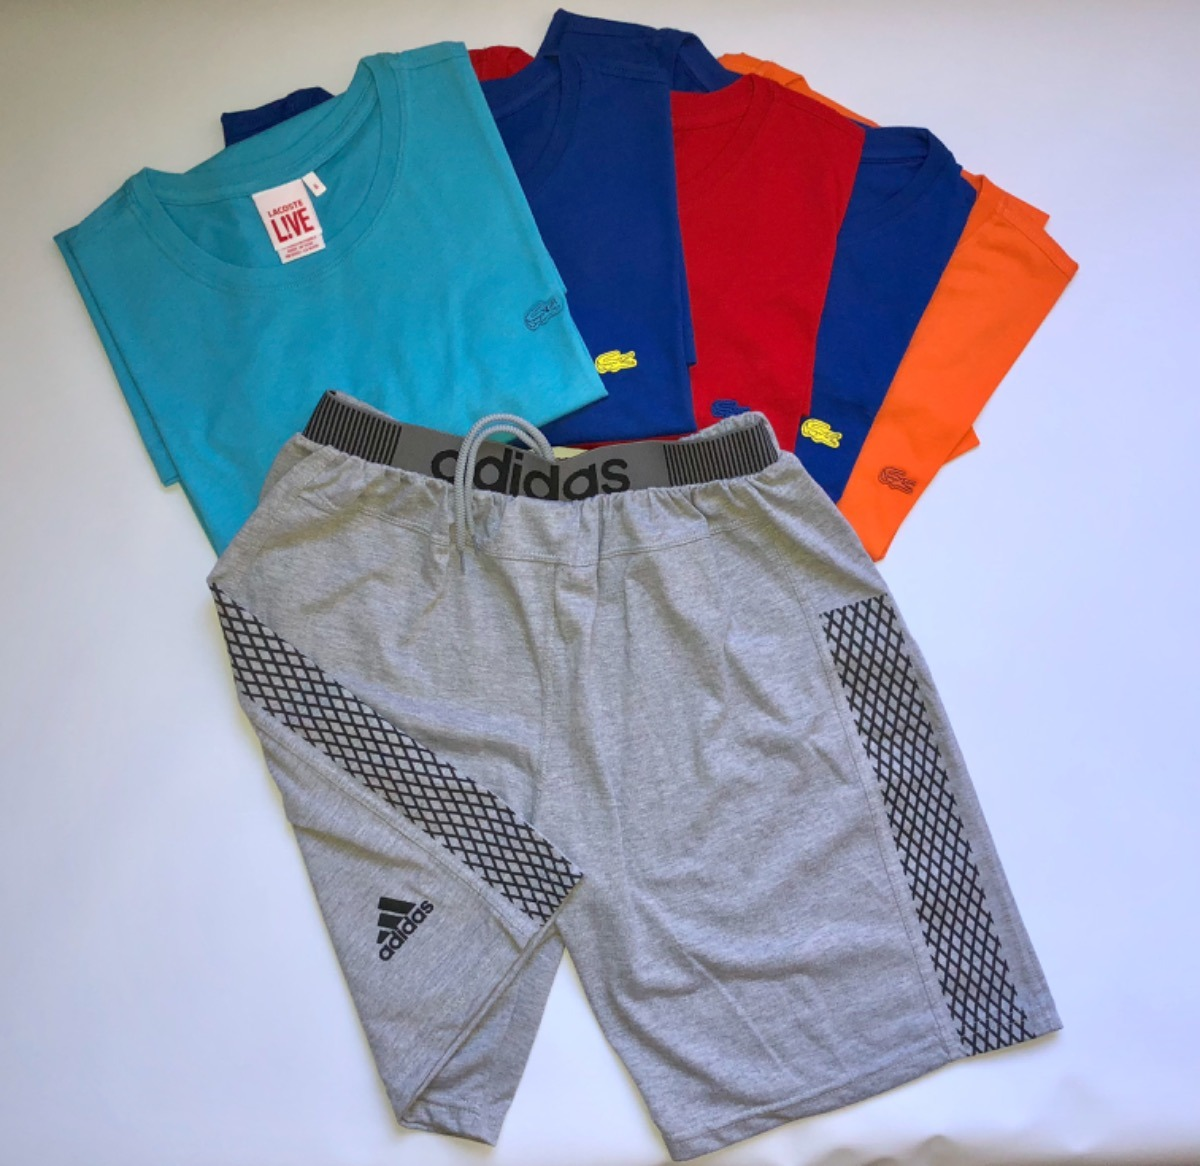 8480a5986cce2 Kit Camisa Bermuda Masculina Lacoste adidas Varias Cores - R  149